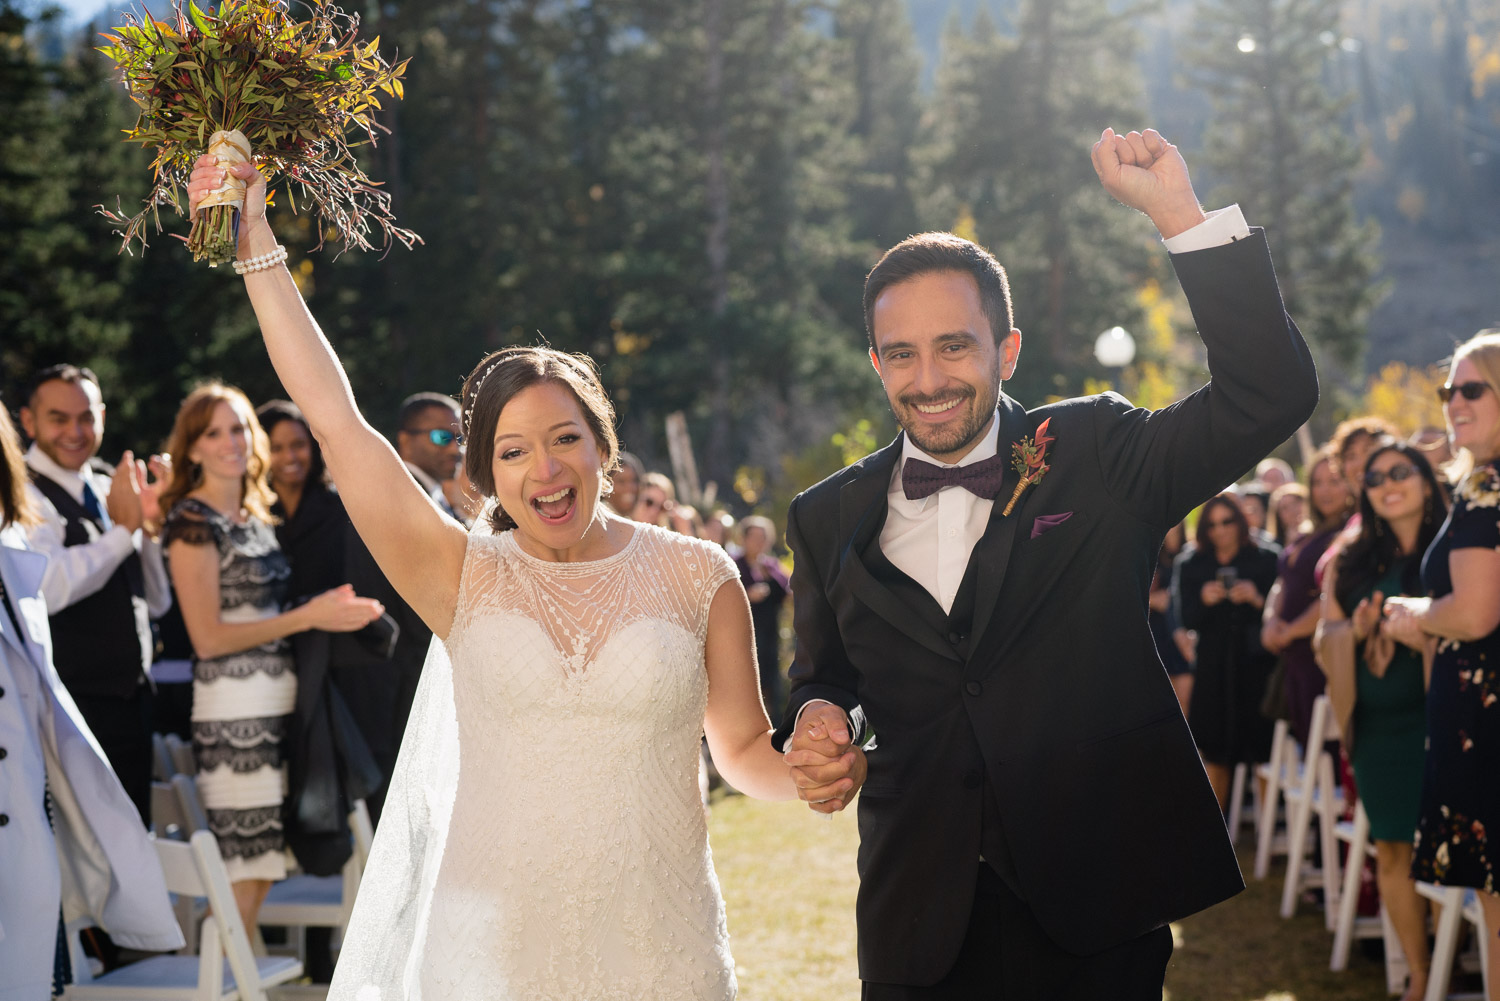 bride and groom walking down aisle celebrating with arms up outdoor fall wedding